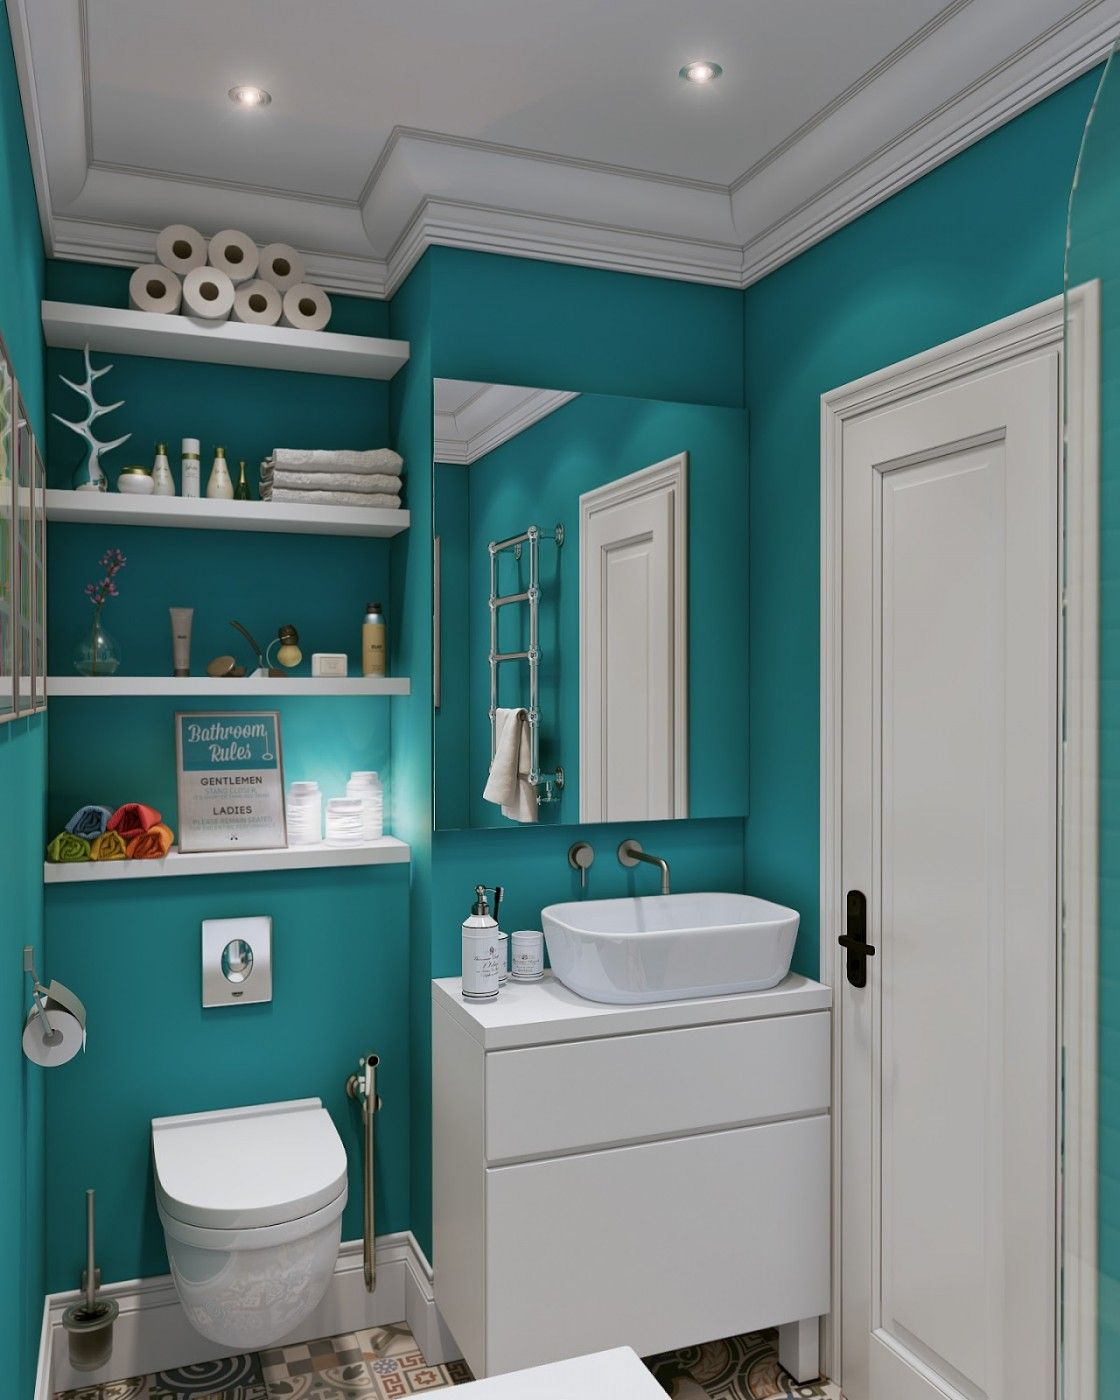 Contemporary Teal Bathroom Wall Color Scheme With Wooden Shelves ...